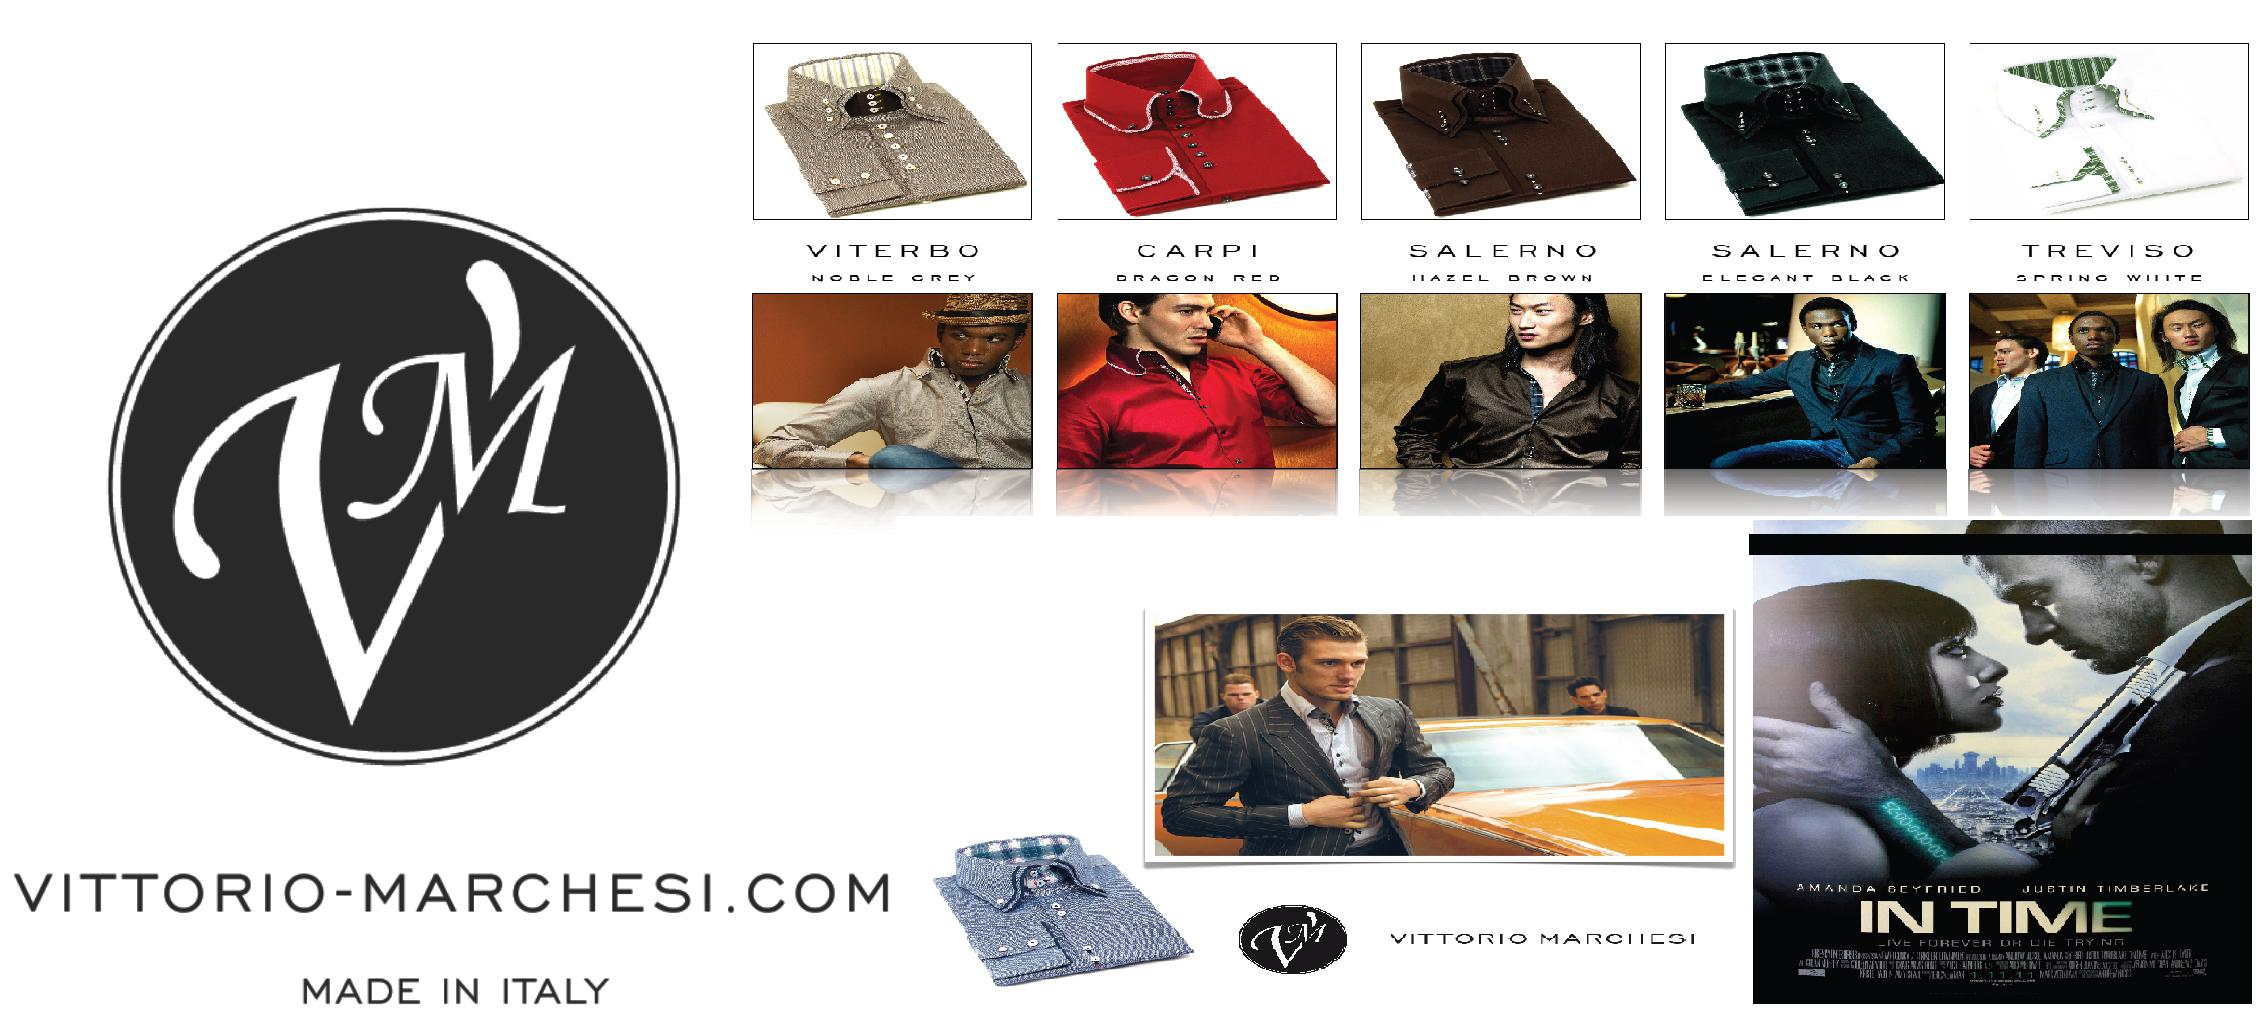 VITTORIO-MARCHESI DESIGNER SHIRT COLLECTION/ MAX AT MASTELONI COLLECTION